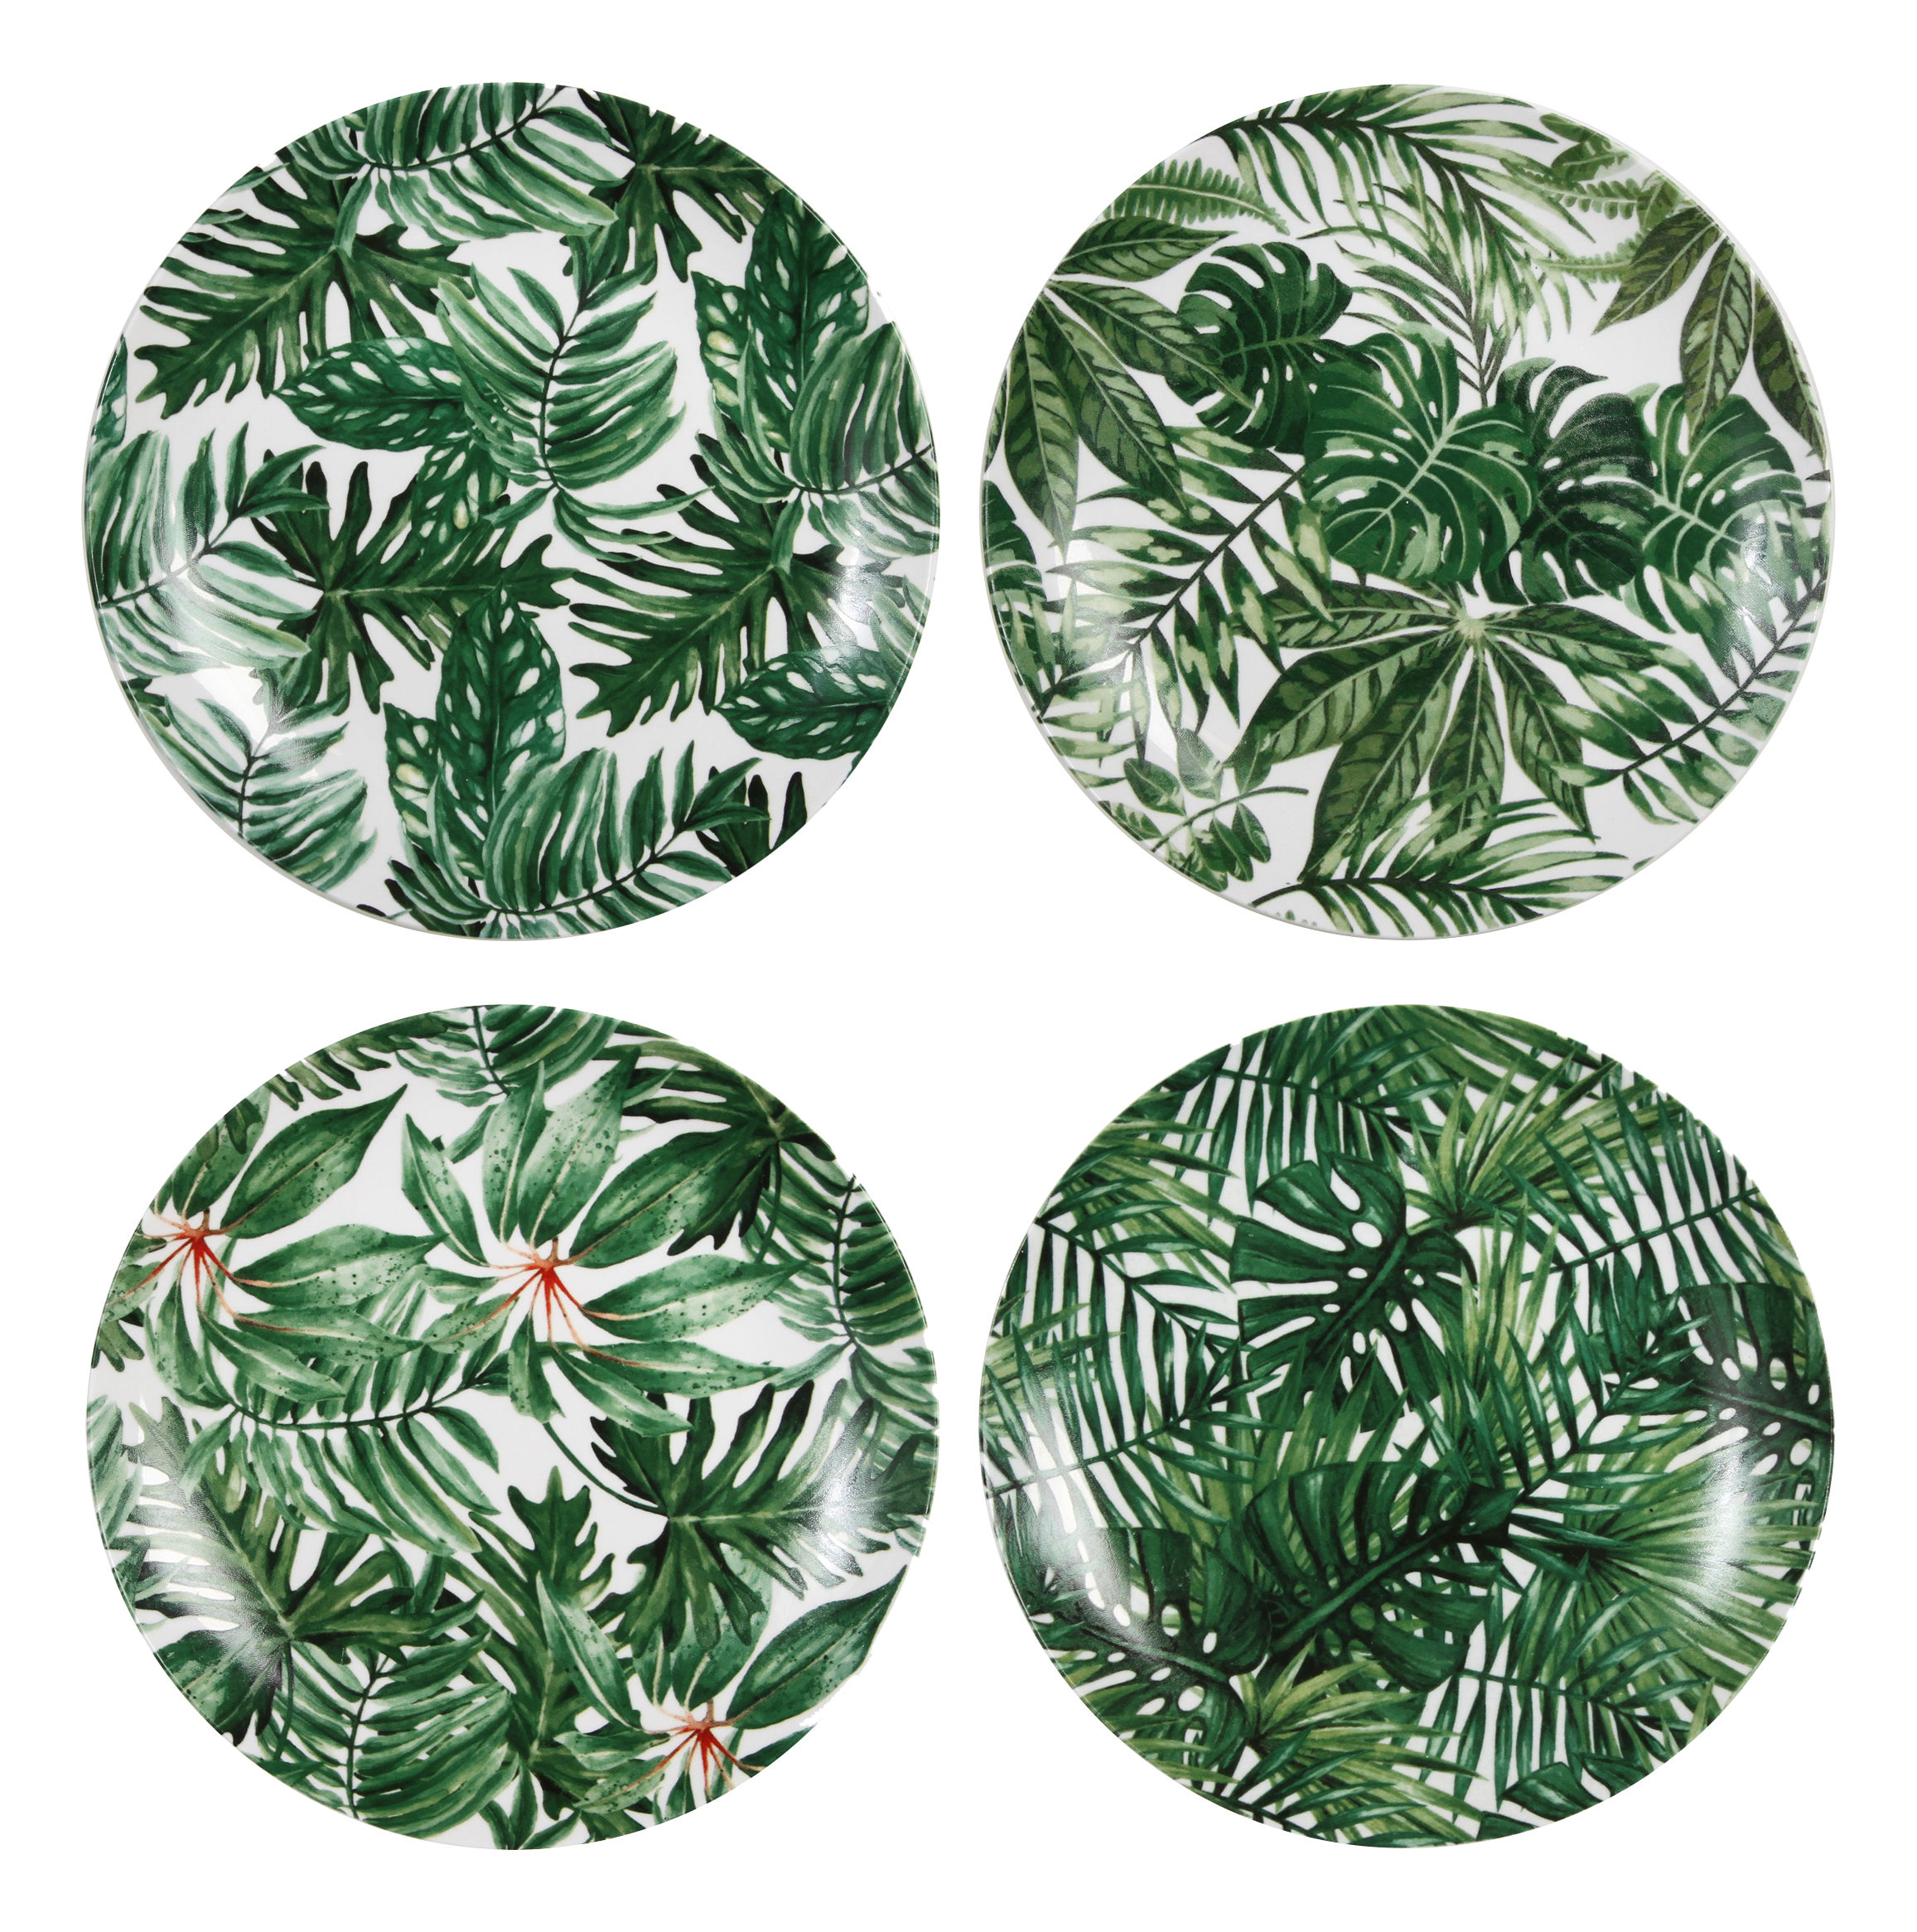 Arts de la table - Assiettes - Assiette Leaves / Set de 4 - Porcelaine - & klevering - Feuilles / Vert - Porcelaine